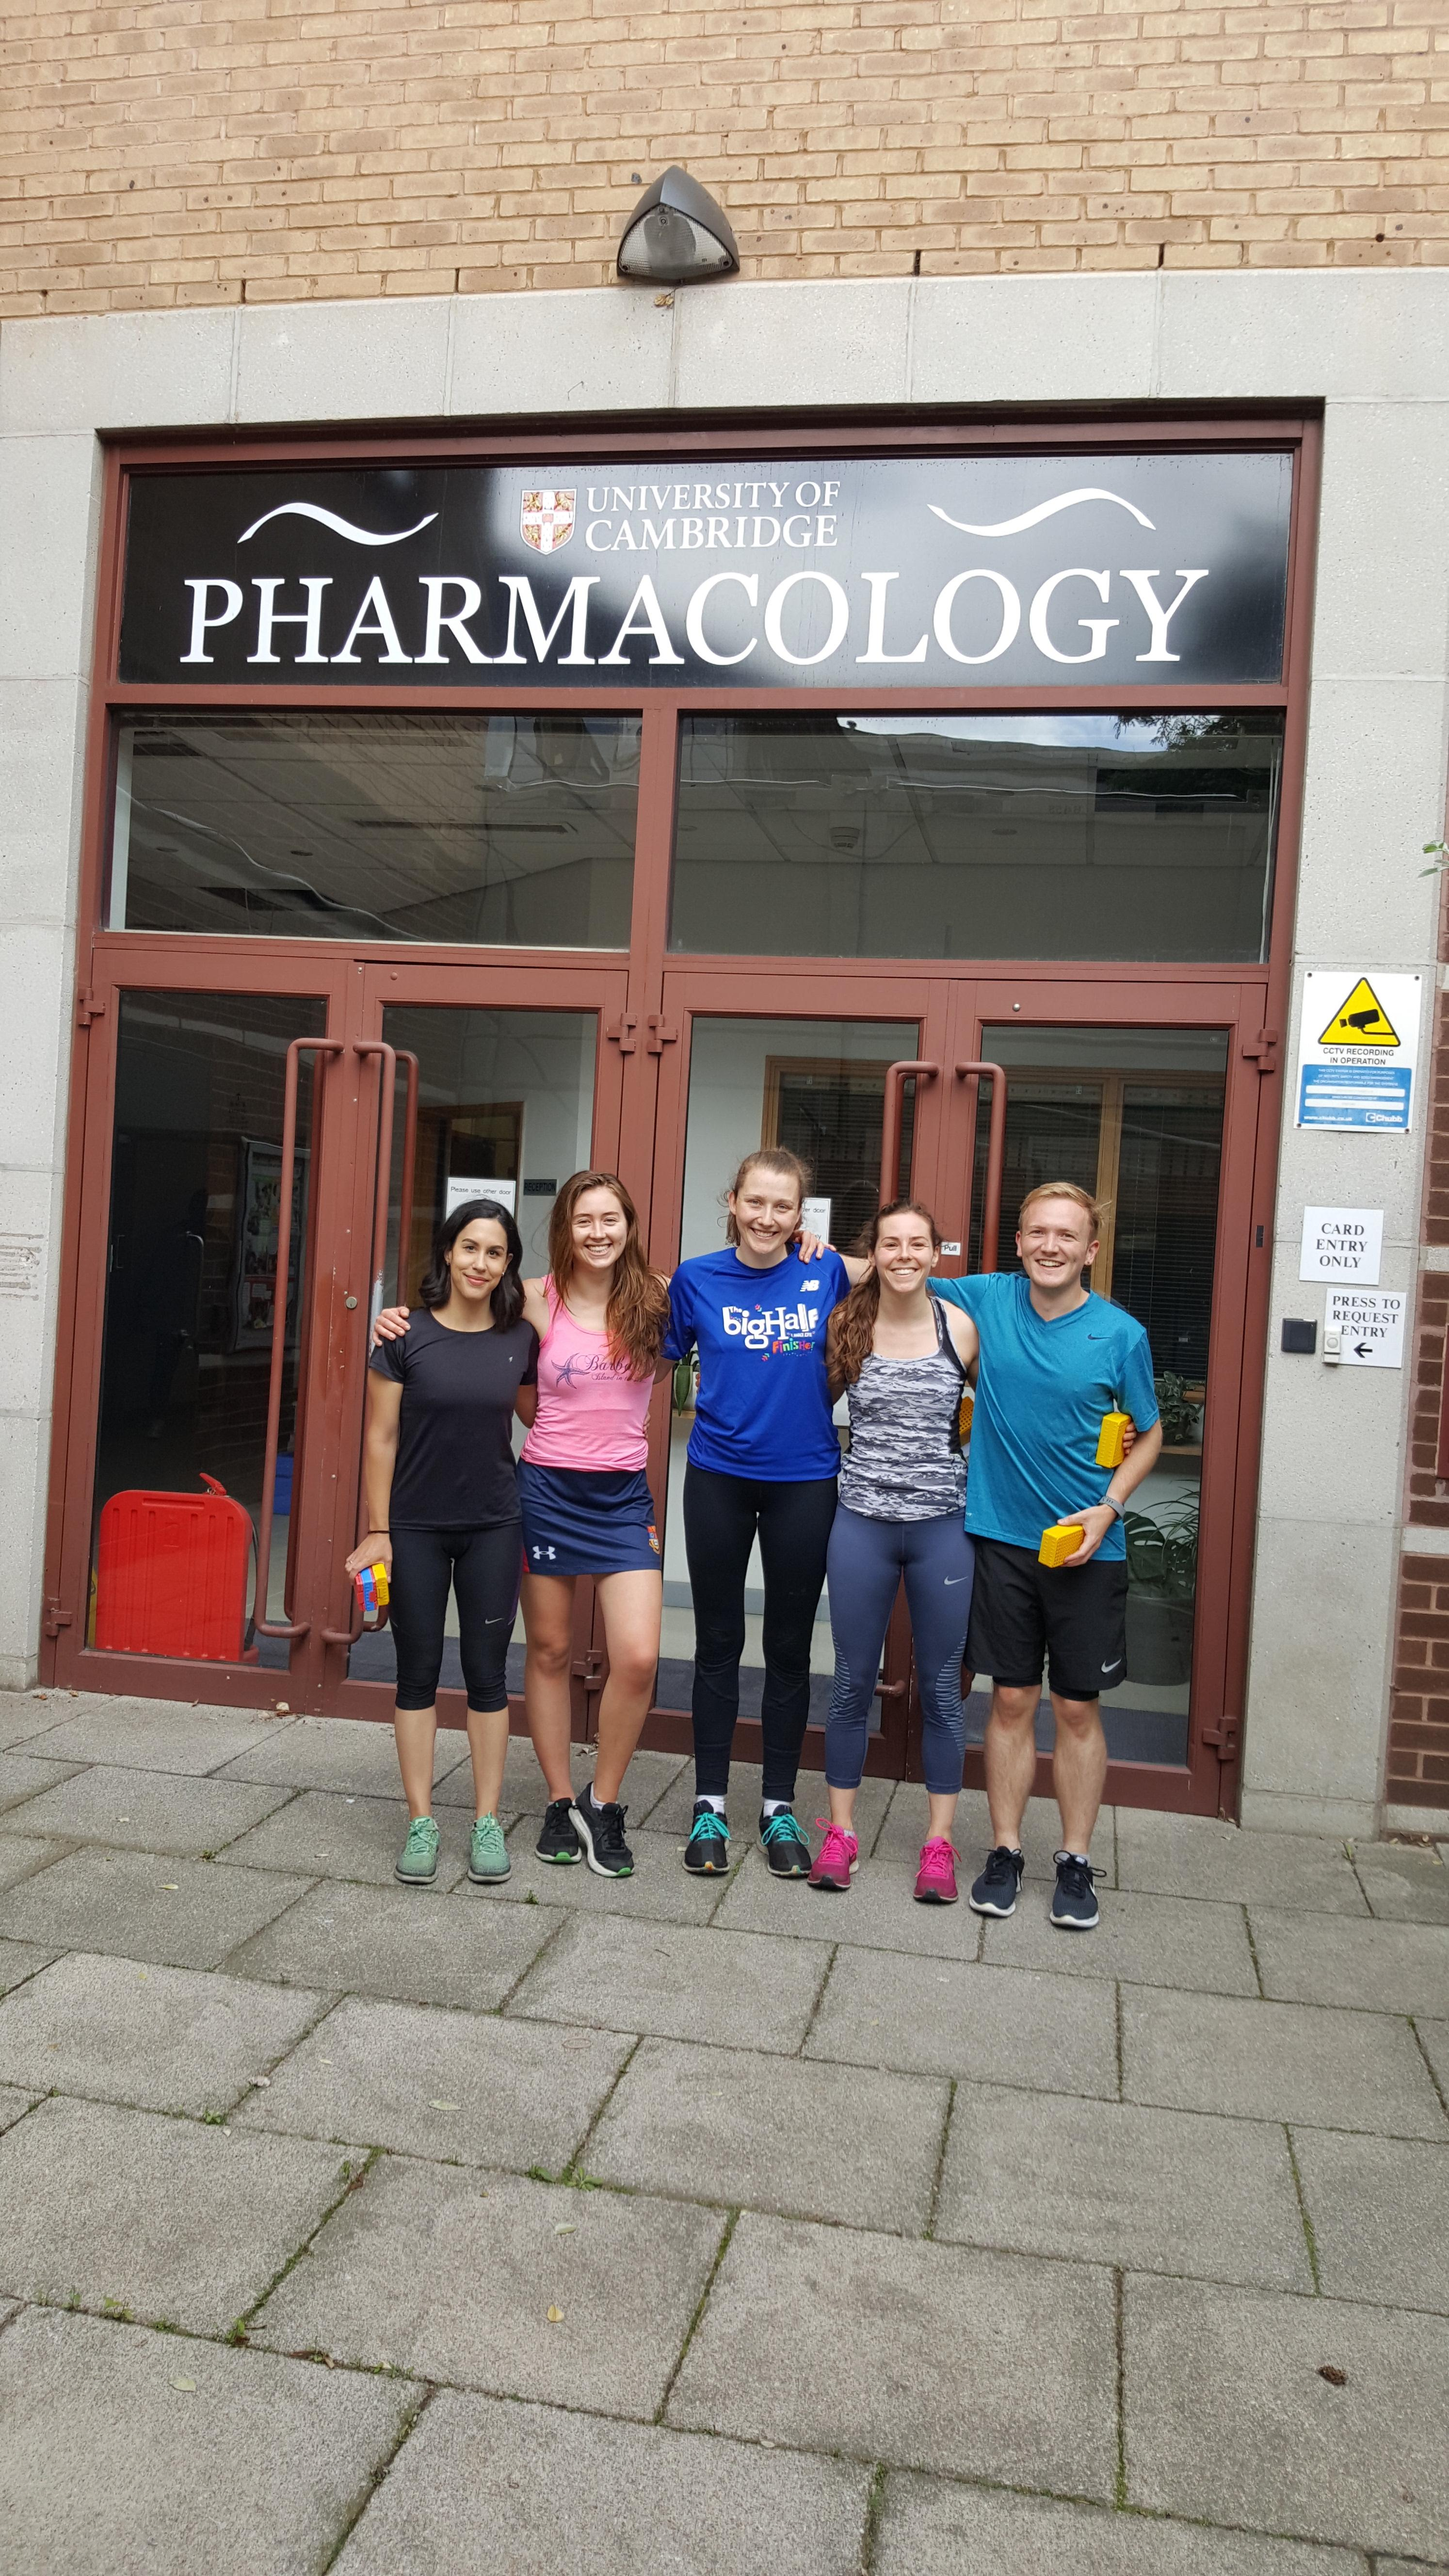 Pharmacology Lunch-time Run Club